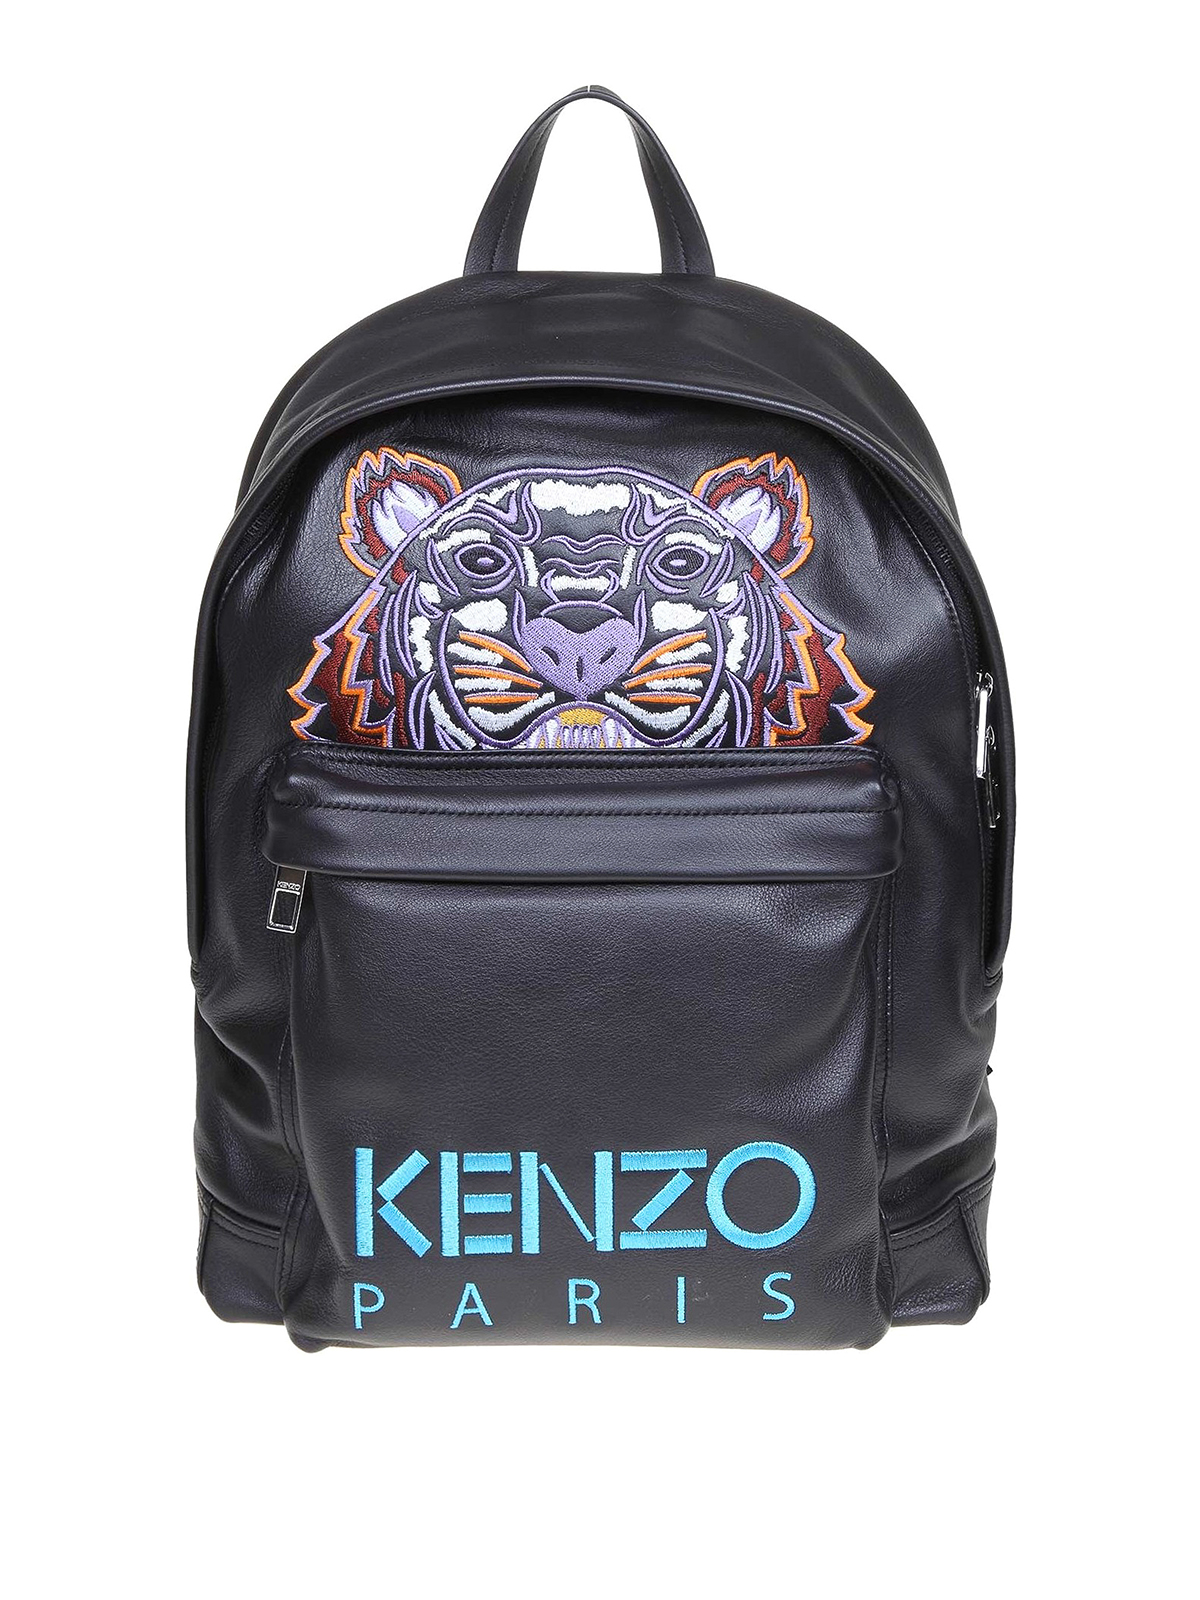 Kenzo Tiger Embroidery Black Leather Backpack